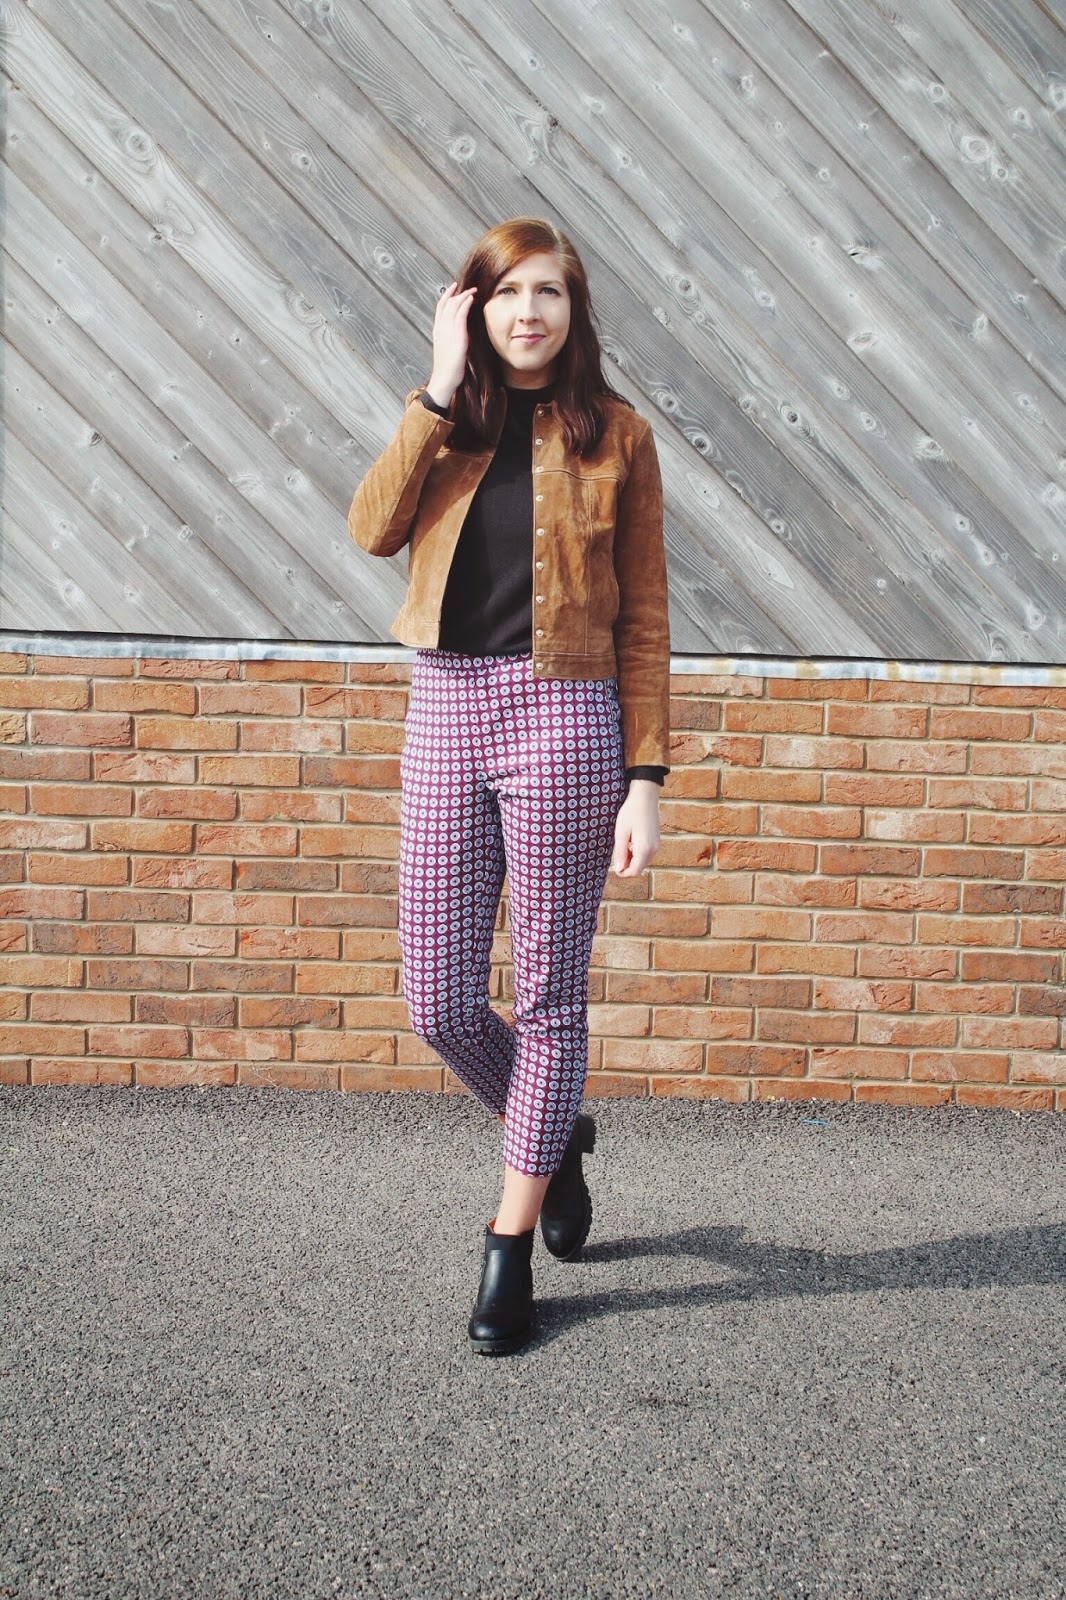 asos, asseenonme, fbloggers, fblogger, halcyonvelvet, wiw, whatimwearing, georgeatasda, suede, mango, rollneck, primark, fashion, fashionbloggers, ootd, outfitoftheday, lotd, lookoftheday